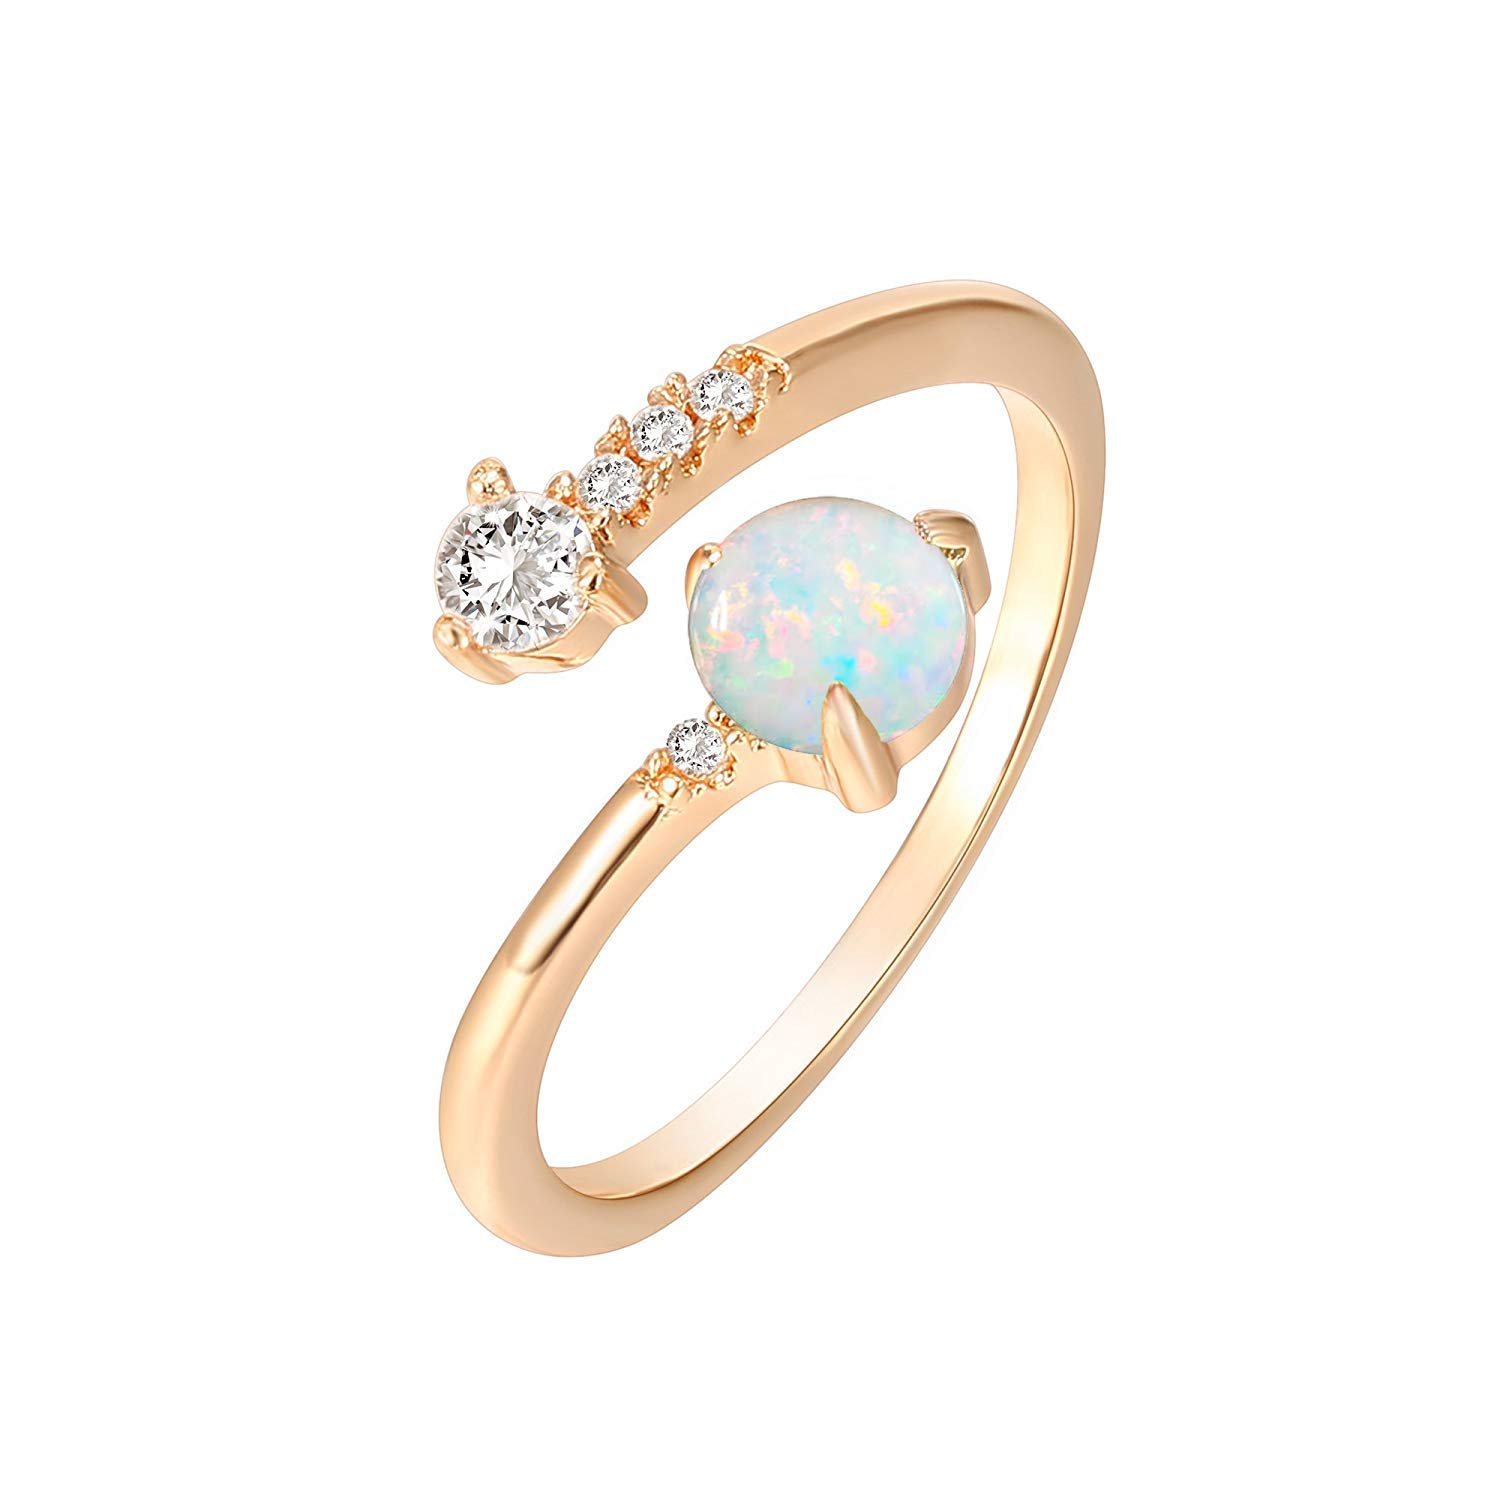 PAVOI 14K Rose Gold Plated Adjustable Created White Opal Rings | Stacking Rings | Gold Rings for Women by PAVOI